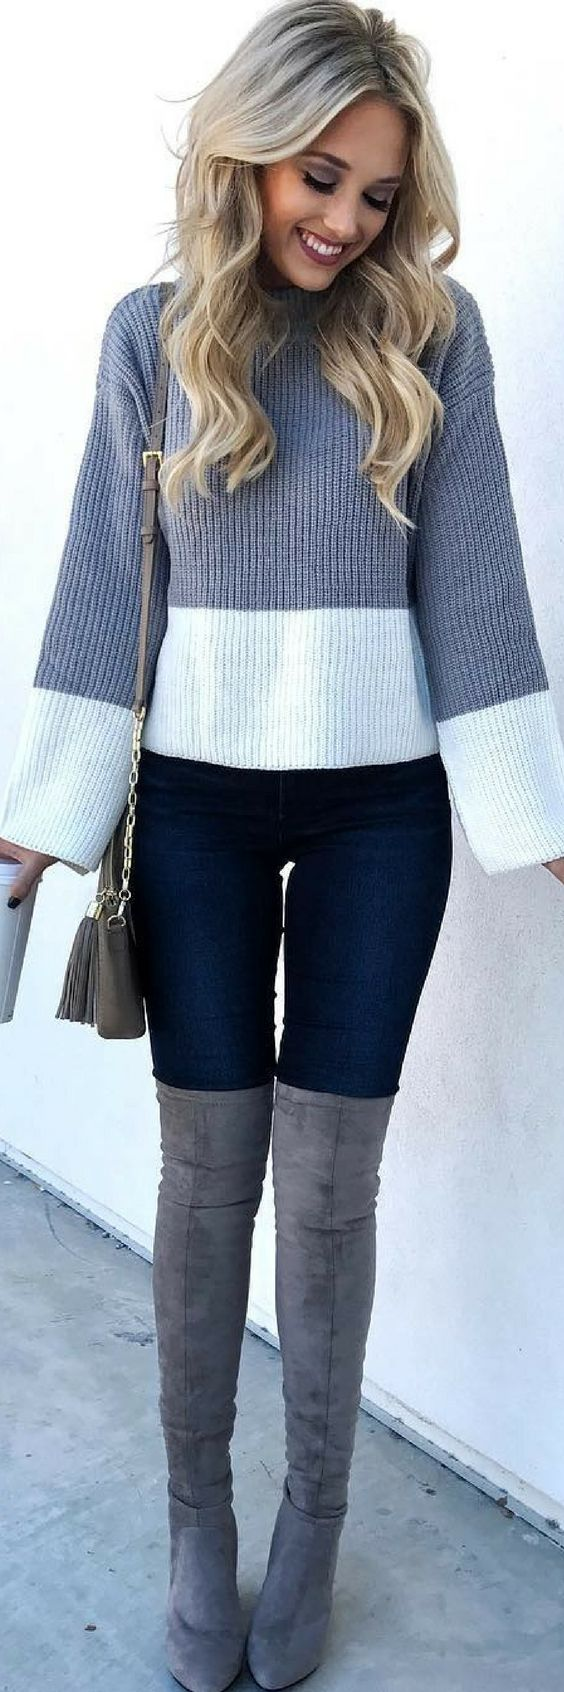 Amazing Look Will Spice Up Your Autumn - How To Style By Emily Herren http://ecstasymodels.blog/2017/10/17/amazing-look-will-style-emily-herren/